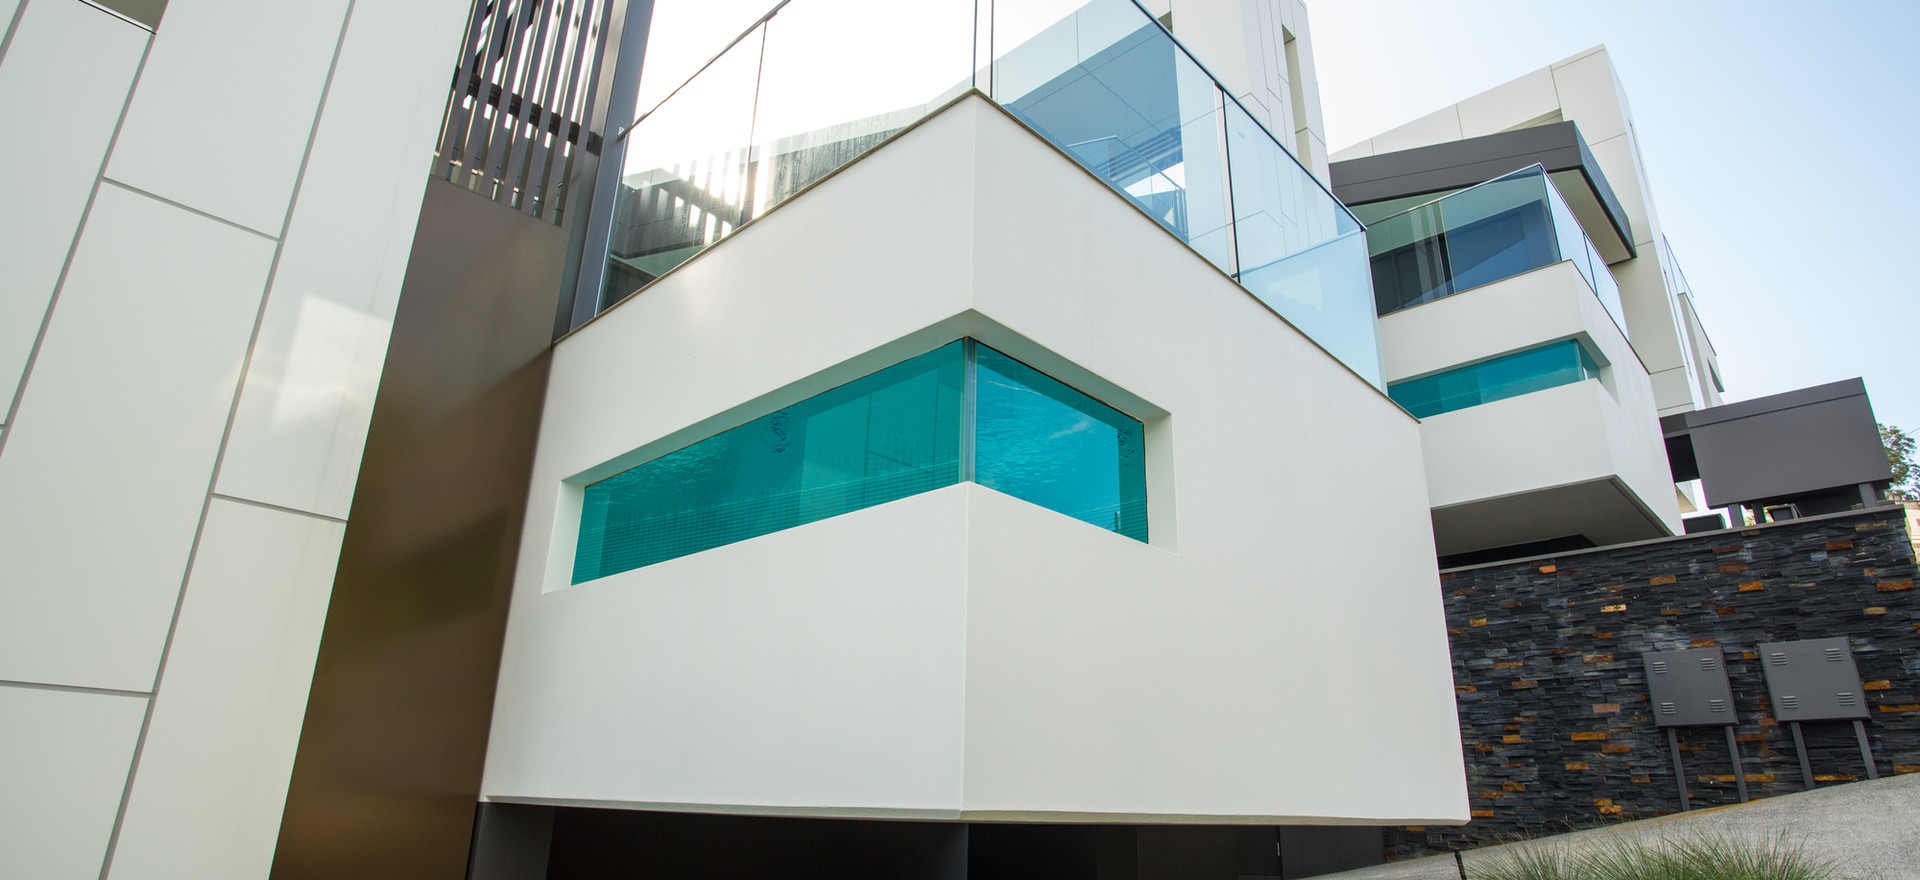 Glass pool window with balustrading on top